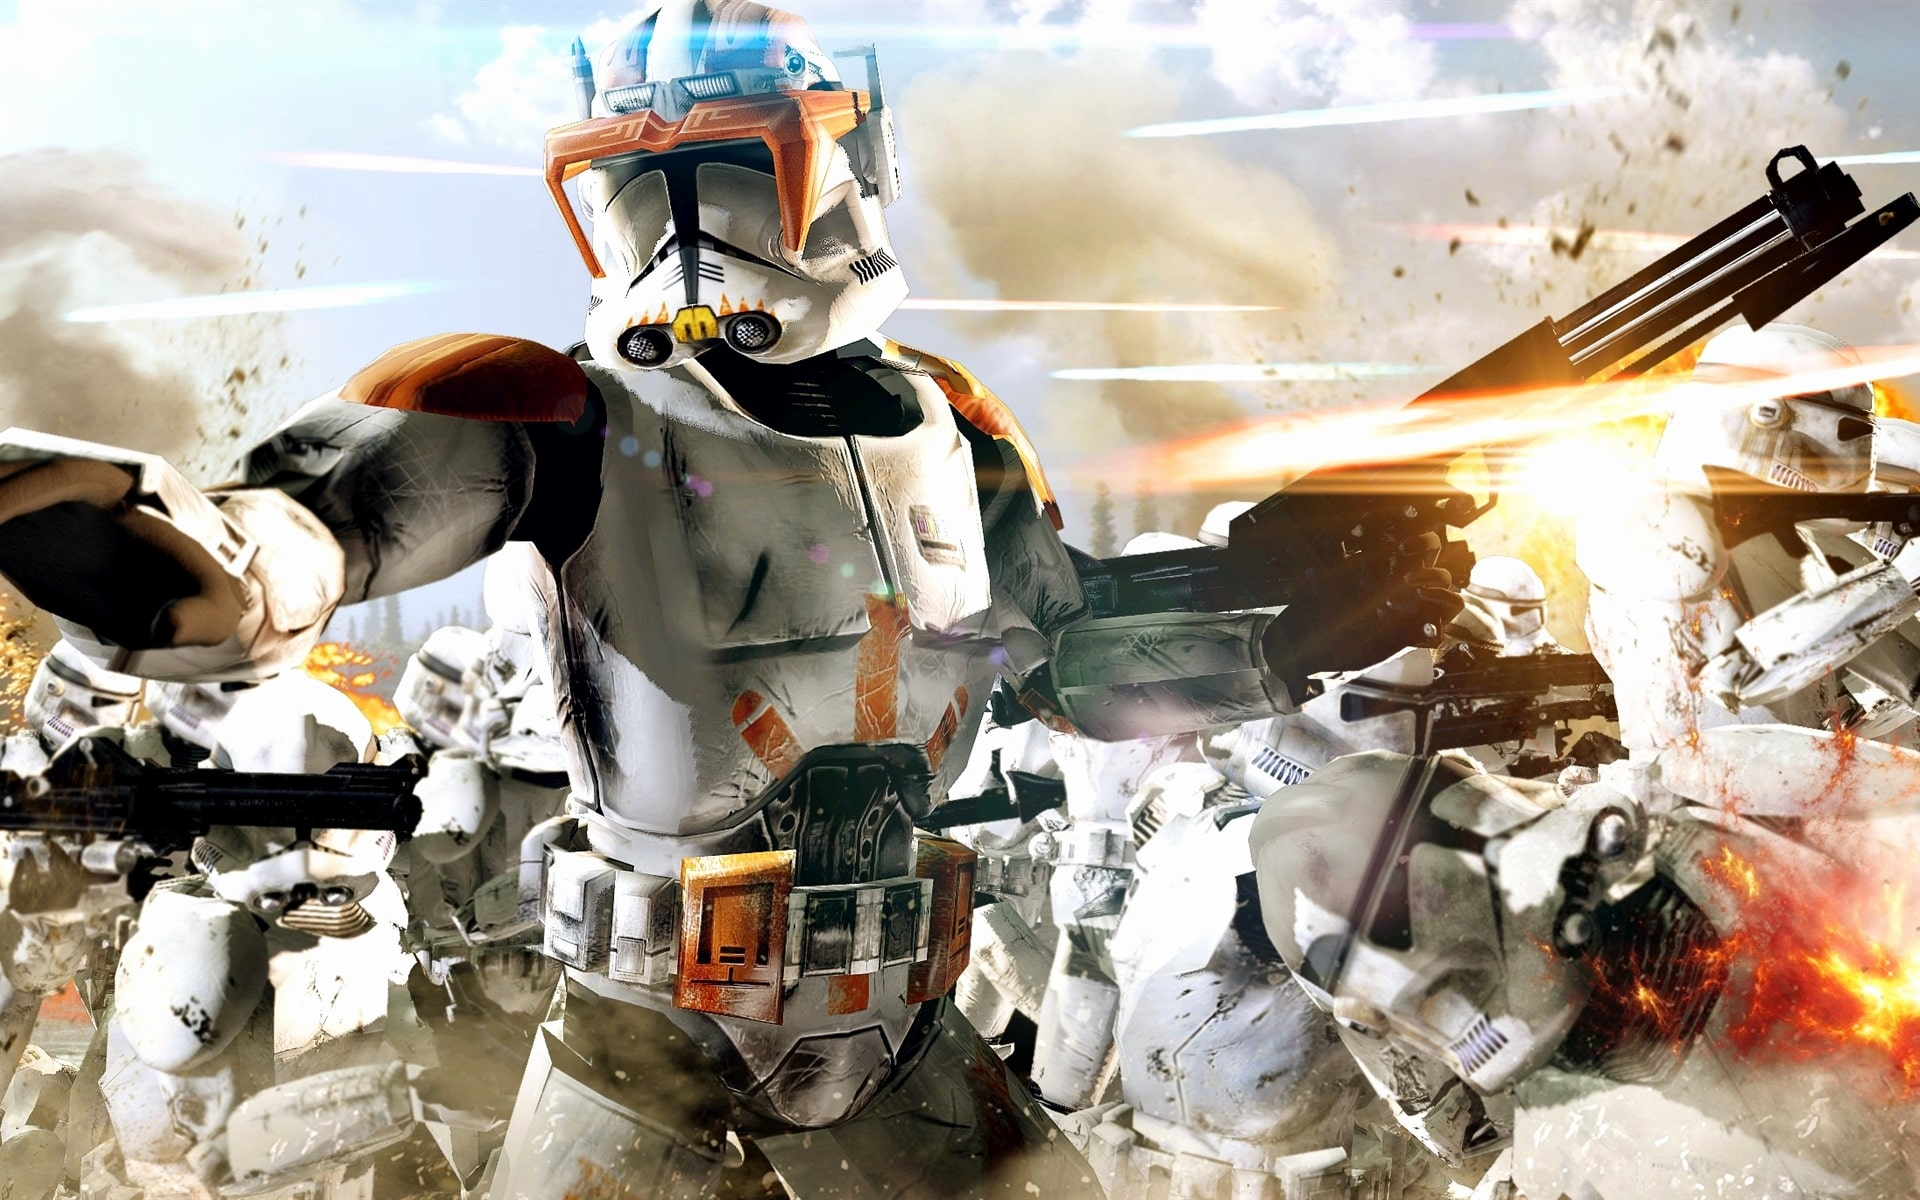 The Clone Trooper Wallpaper Kolpaper Awesome Free Hd Wallpapers